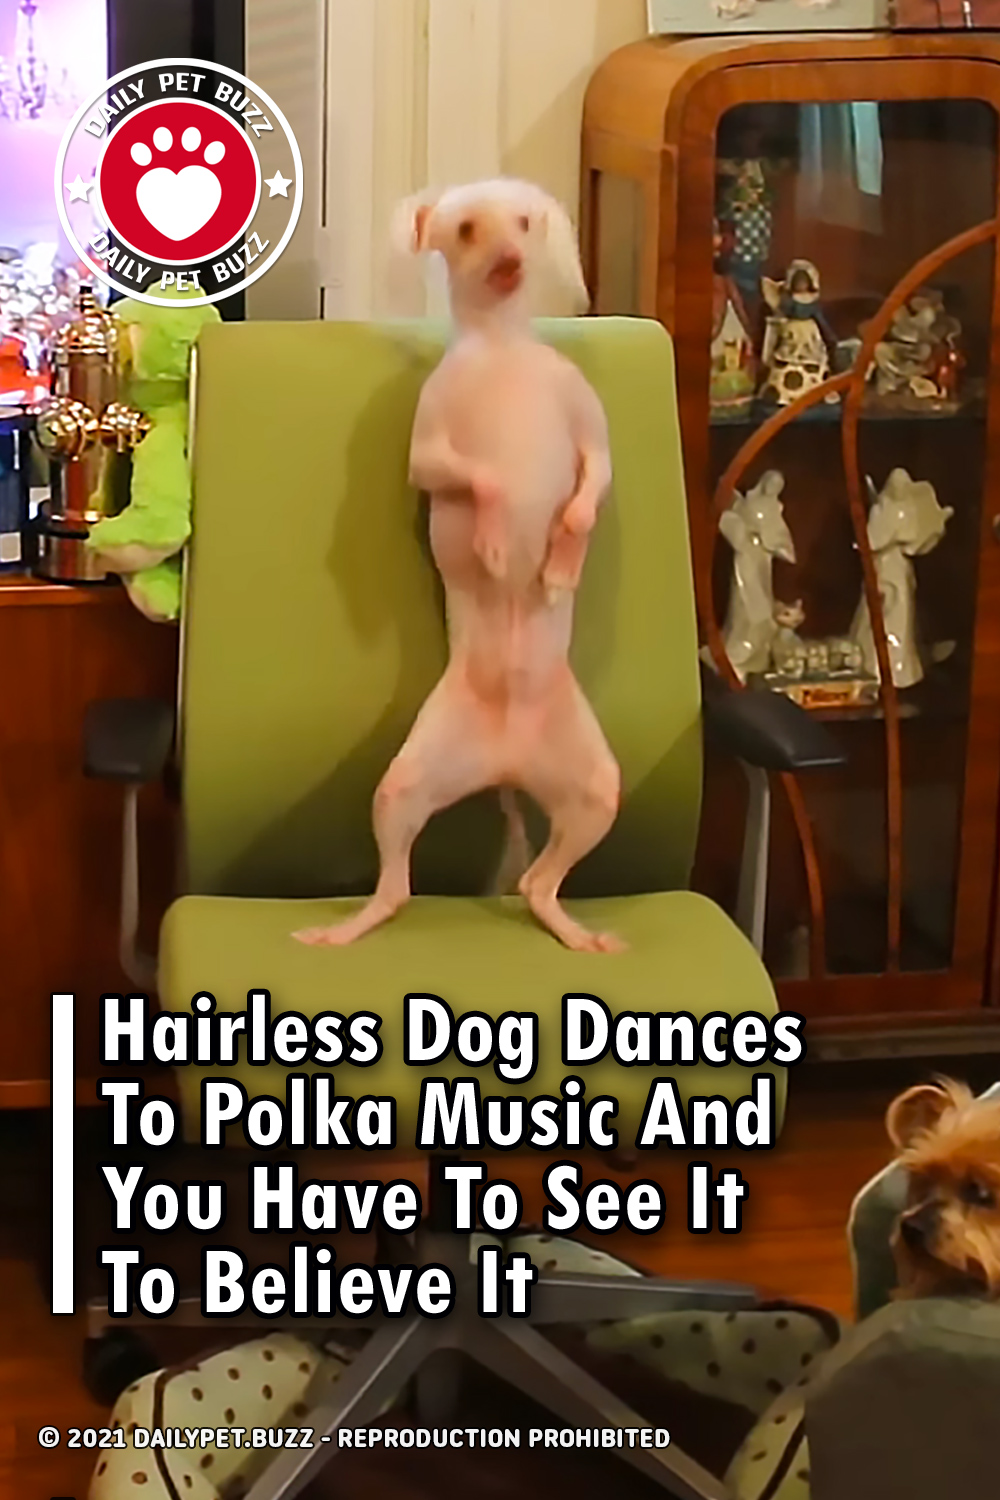 Hairless Dog Dances To Polka Music And You Have To See It To Believe It